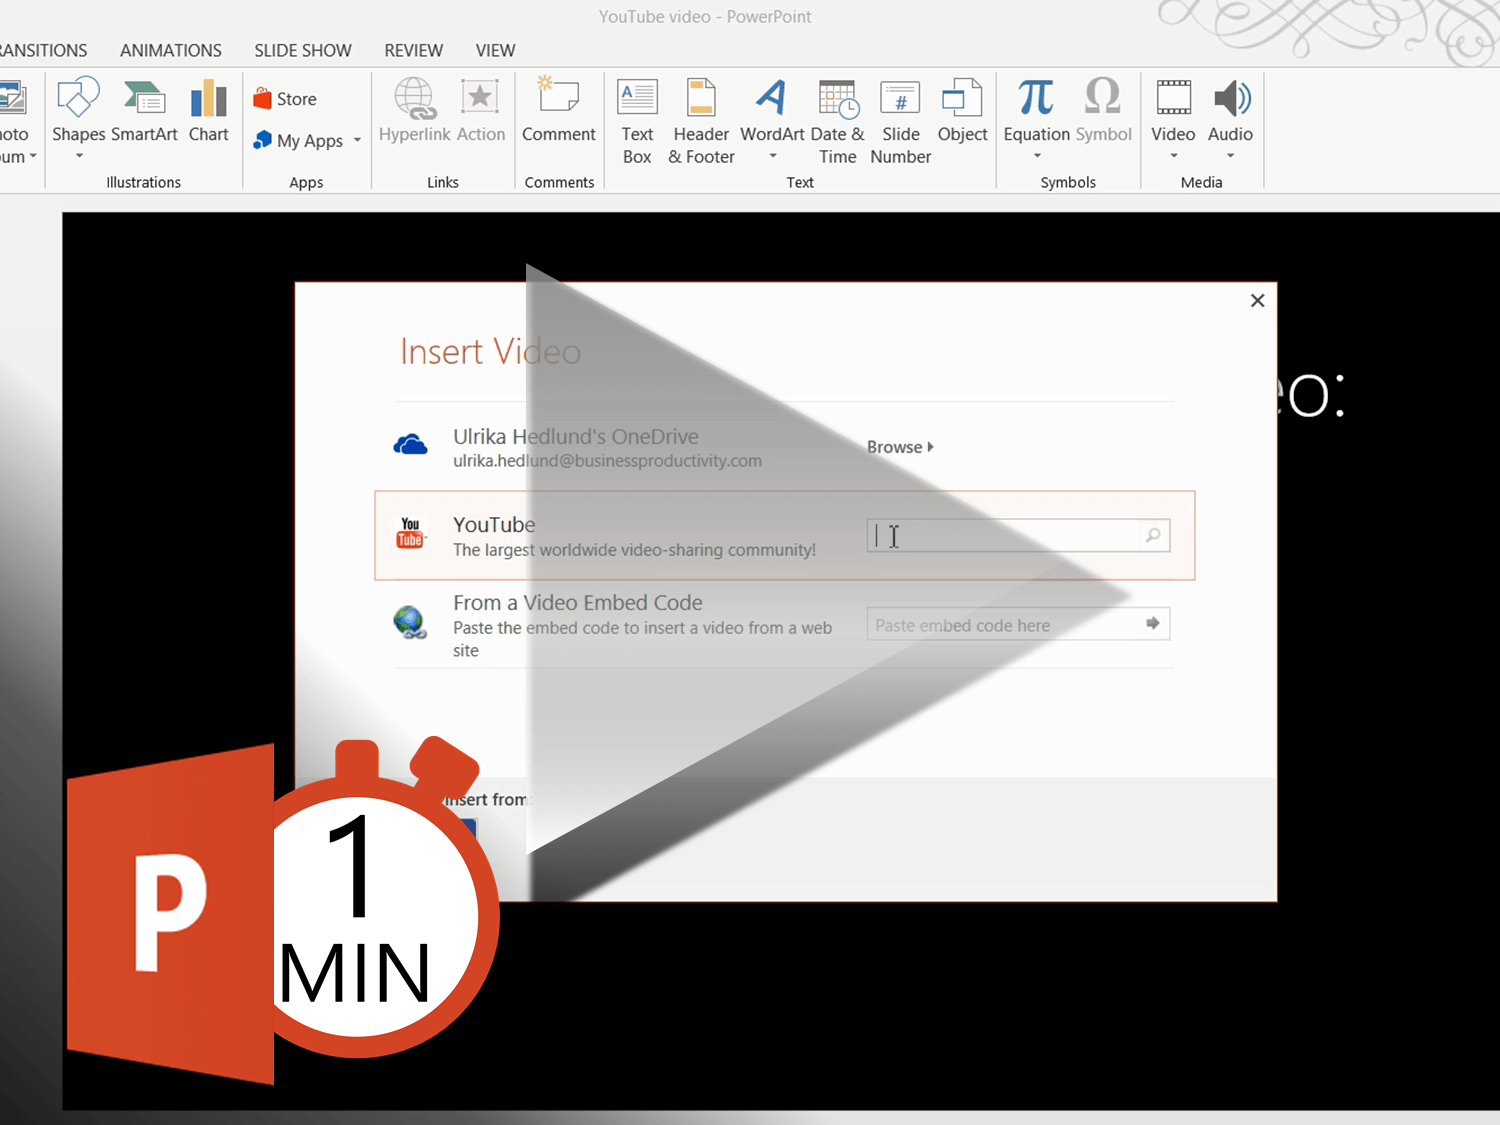 How to insert a YouTube video in PowerPoint 2013